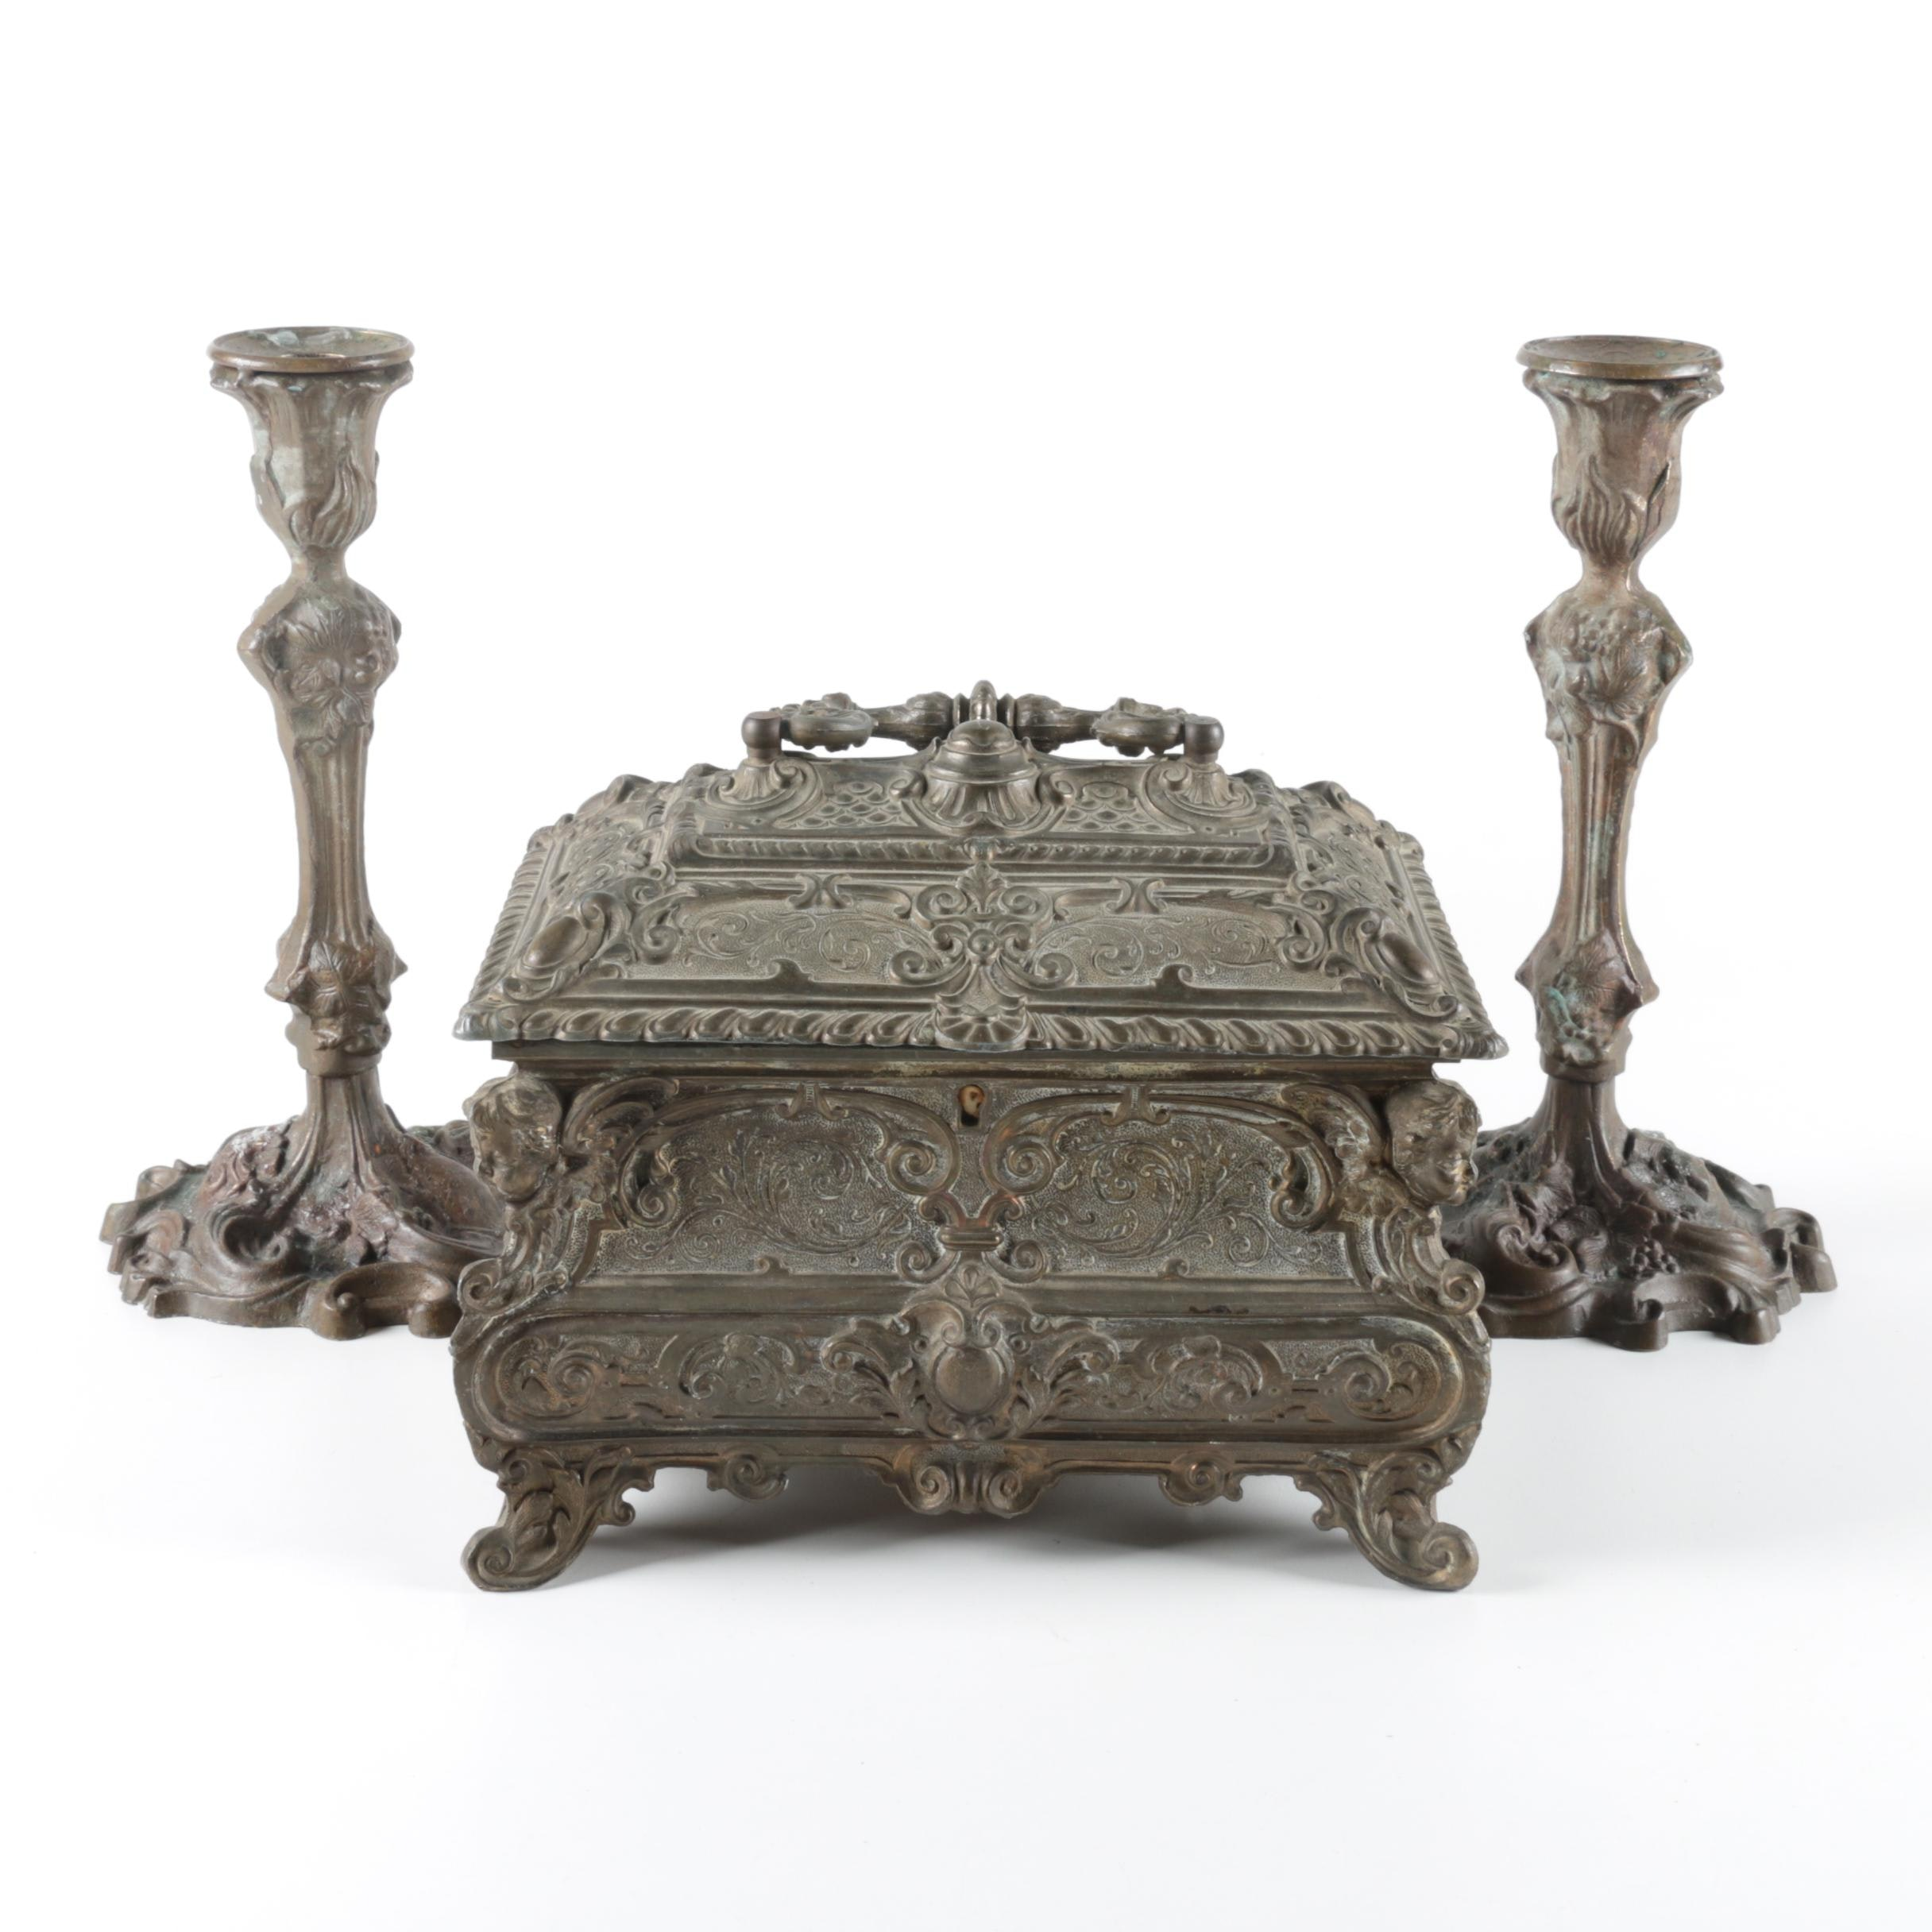 Ornate Renaissance Style Brass Jewelry Box and Candle Holders